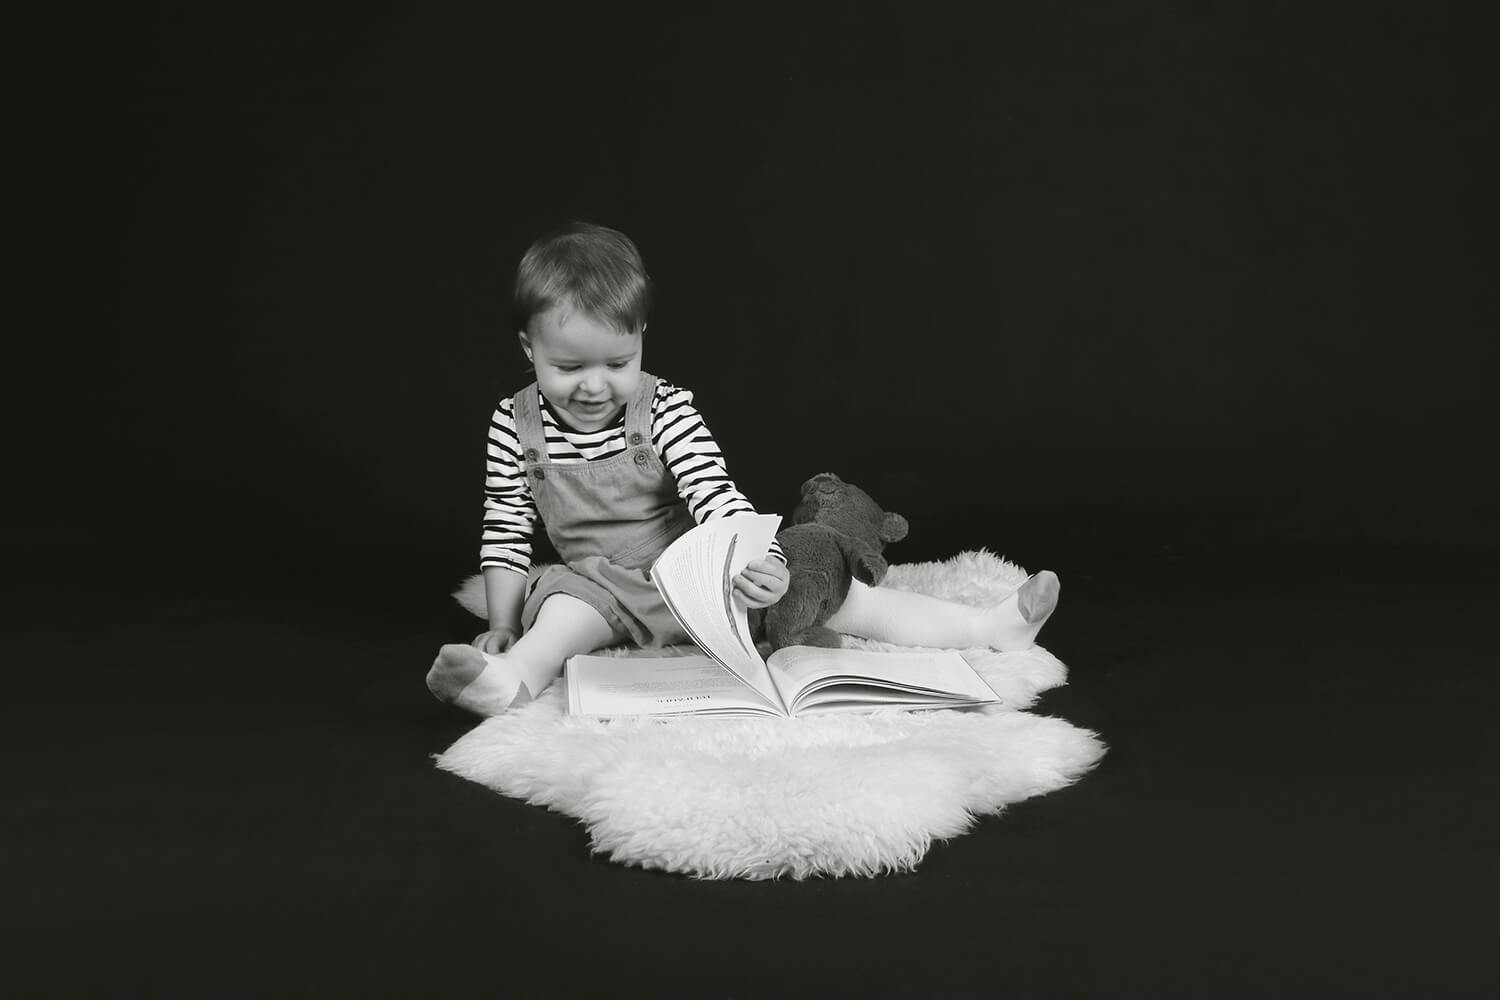 black and white family photo of a little girl with a book on a dark background